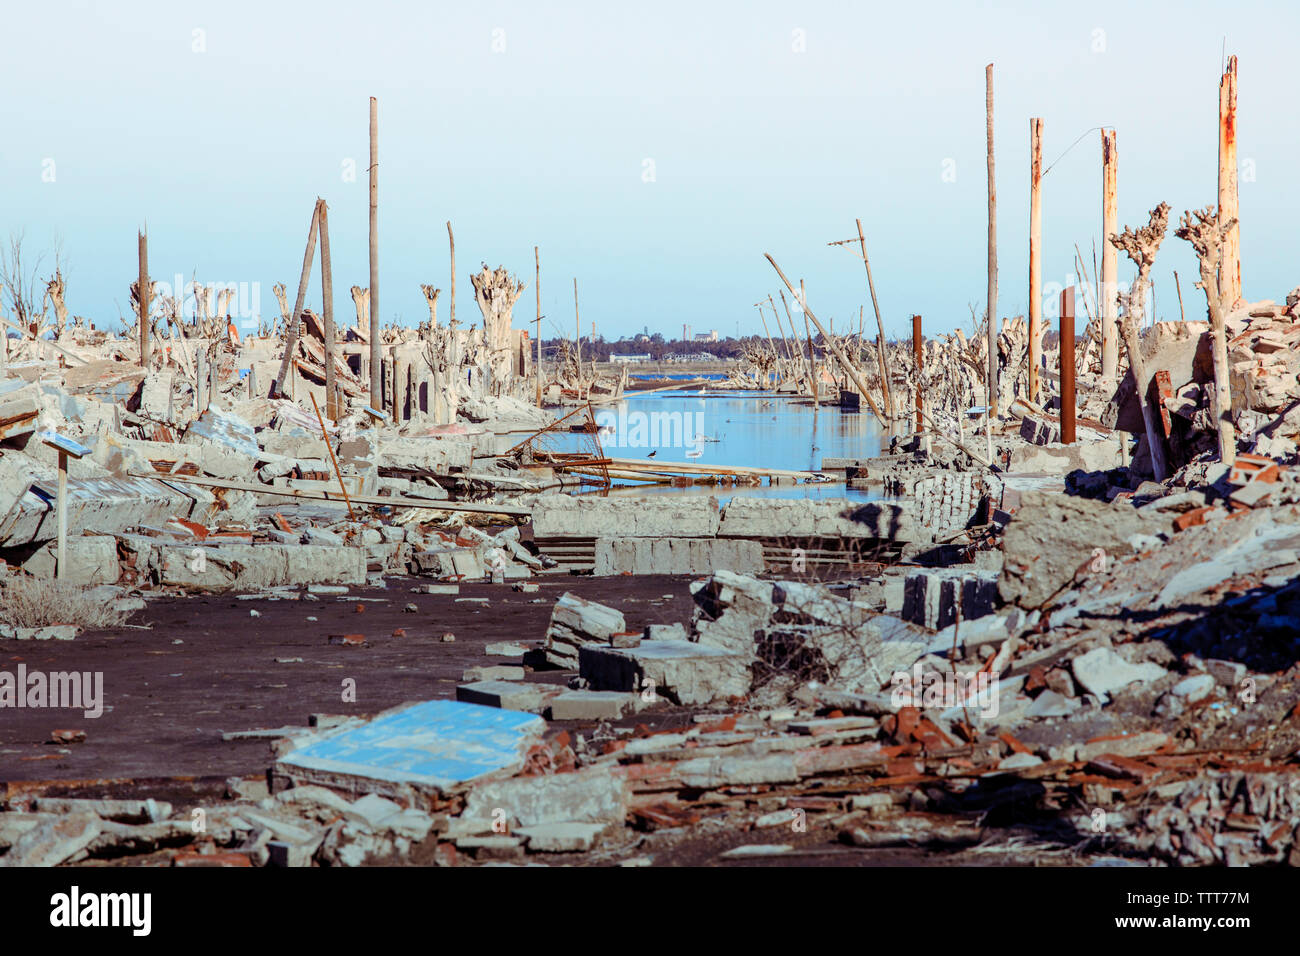 Demolished buildings against clear sky during Hurricane Harvey - Stock Image